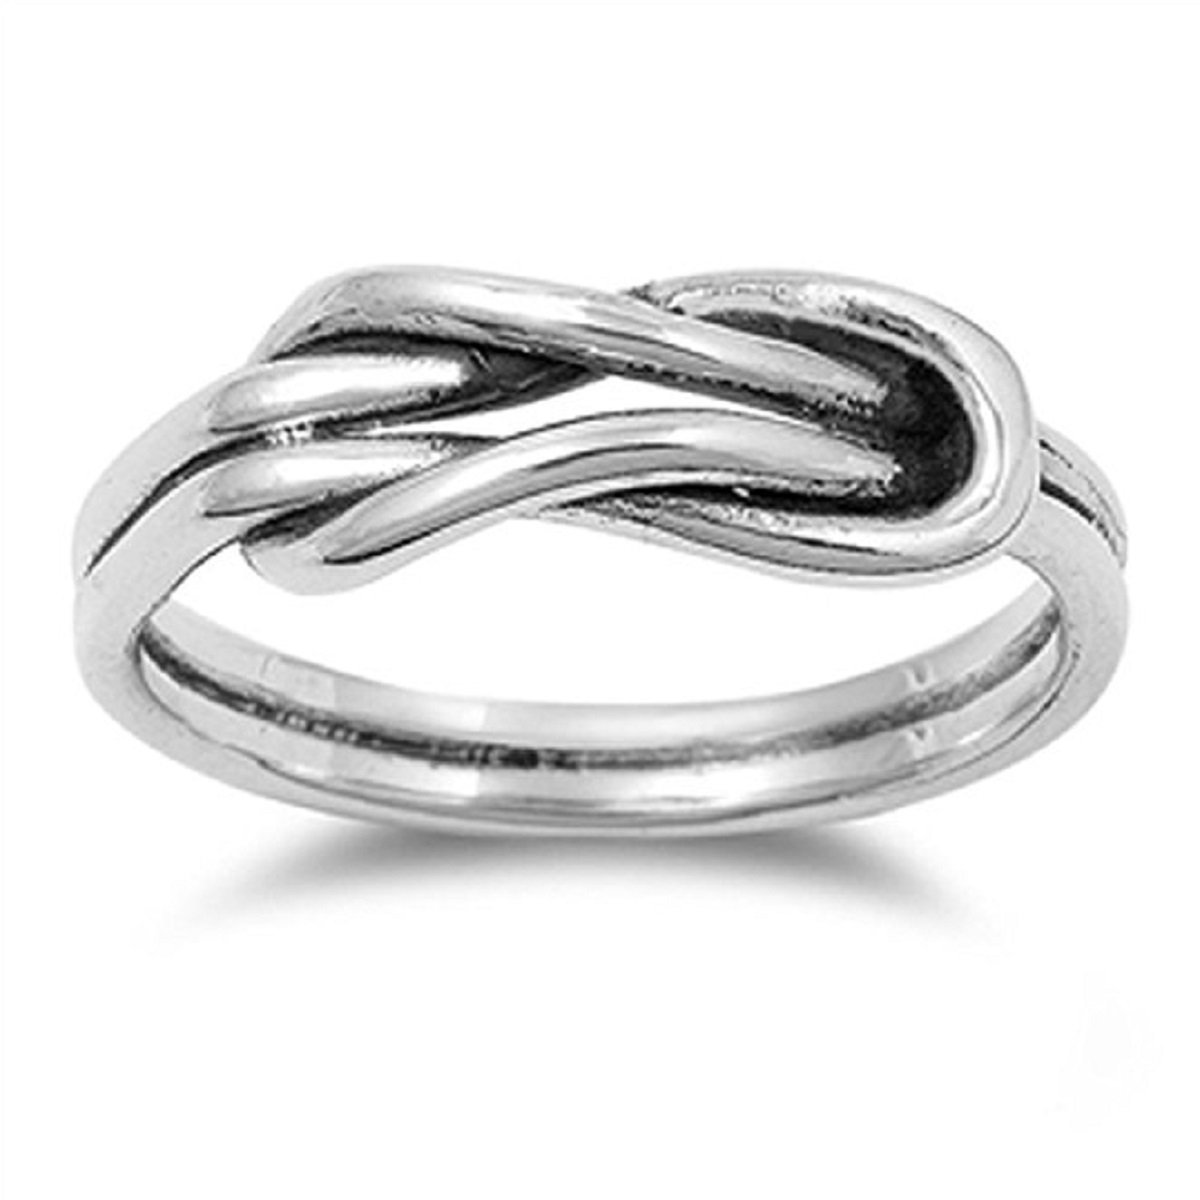 CloseoutWarehouse Oxidized Sterling Silver Infinity Promise Knot Ring Size 4